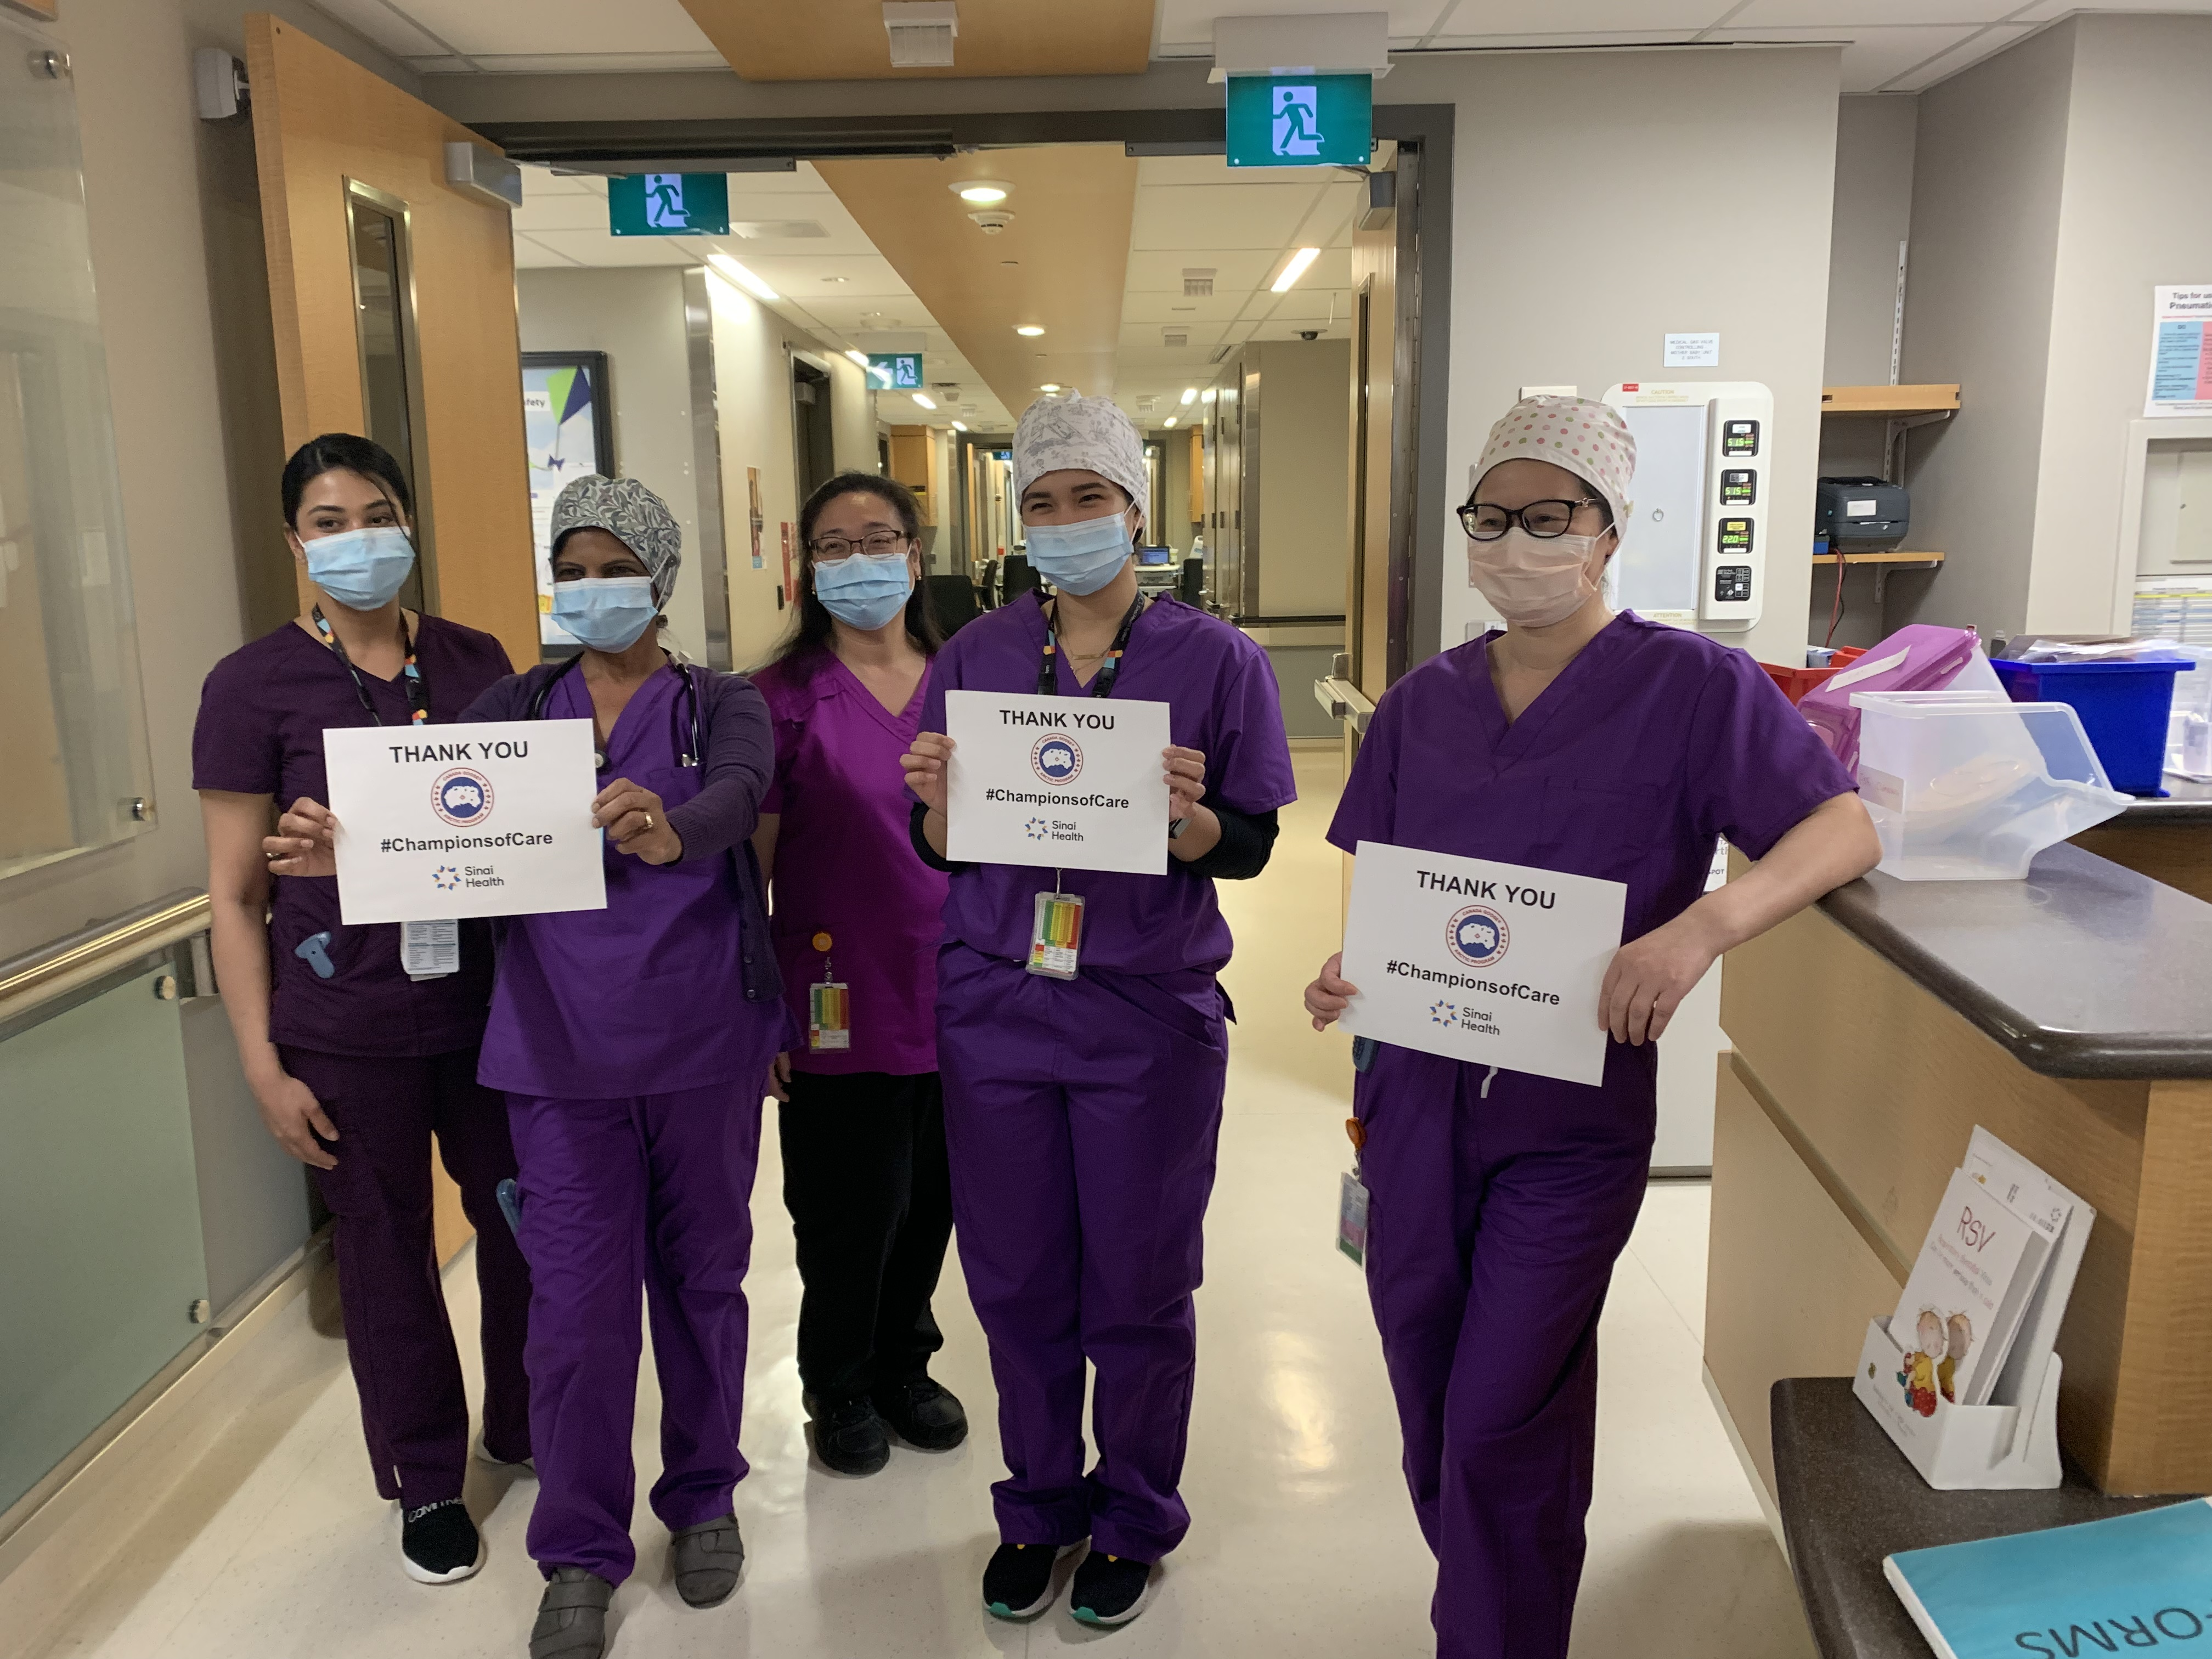 Nurses wearing purple scrubs in the hallway of a hospital. They are holding signs that say Thank You